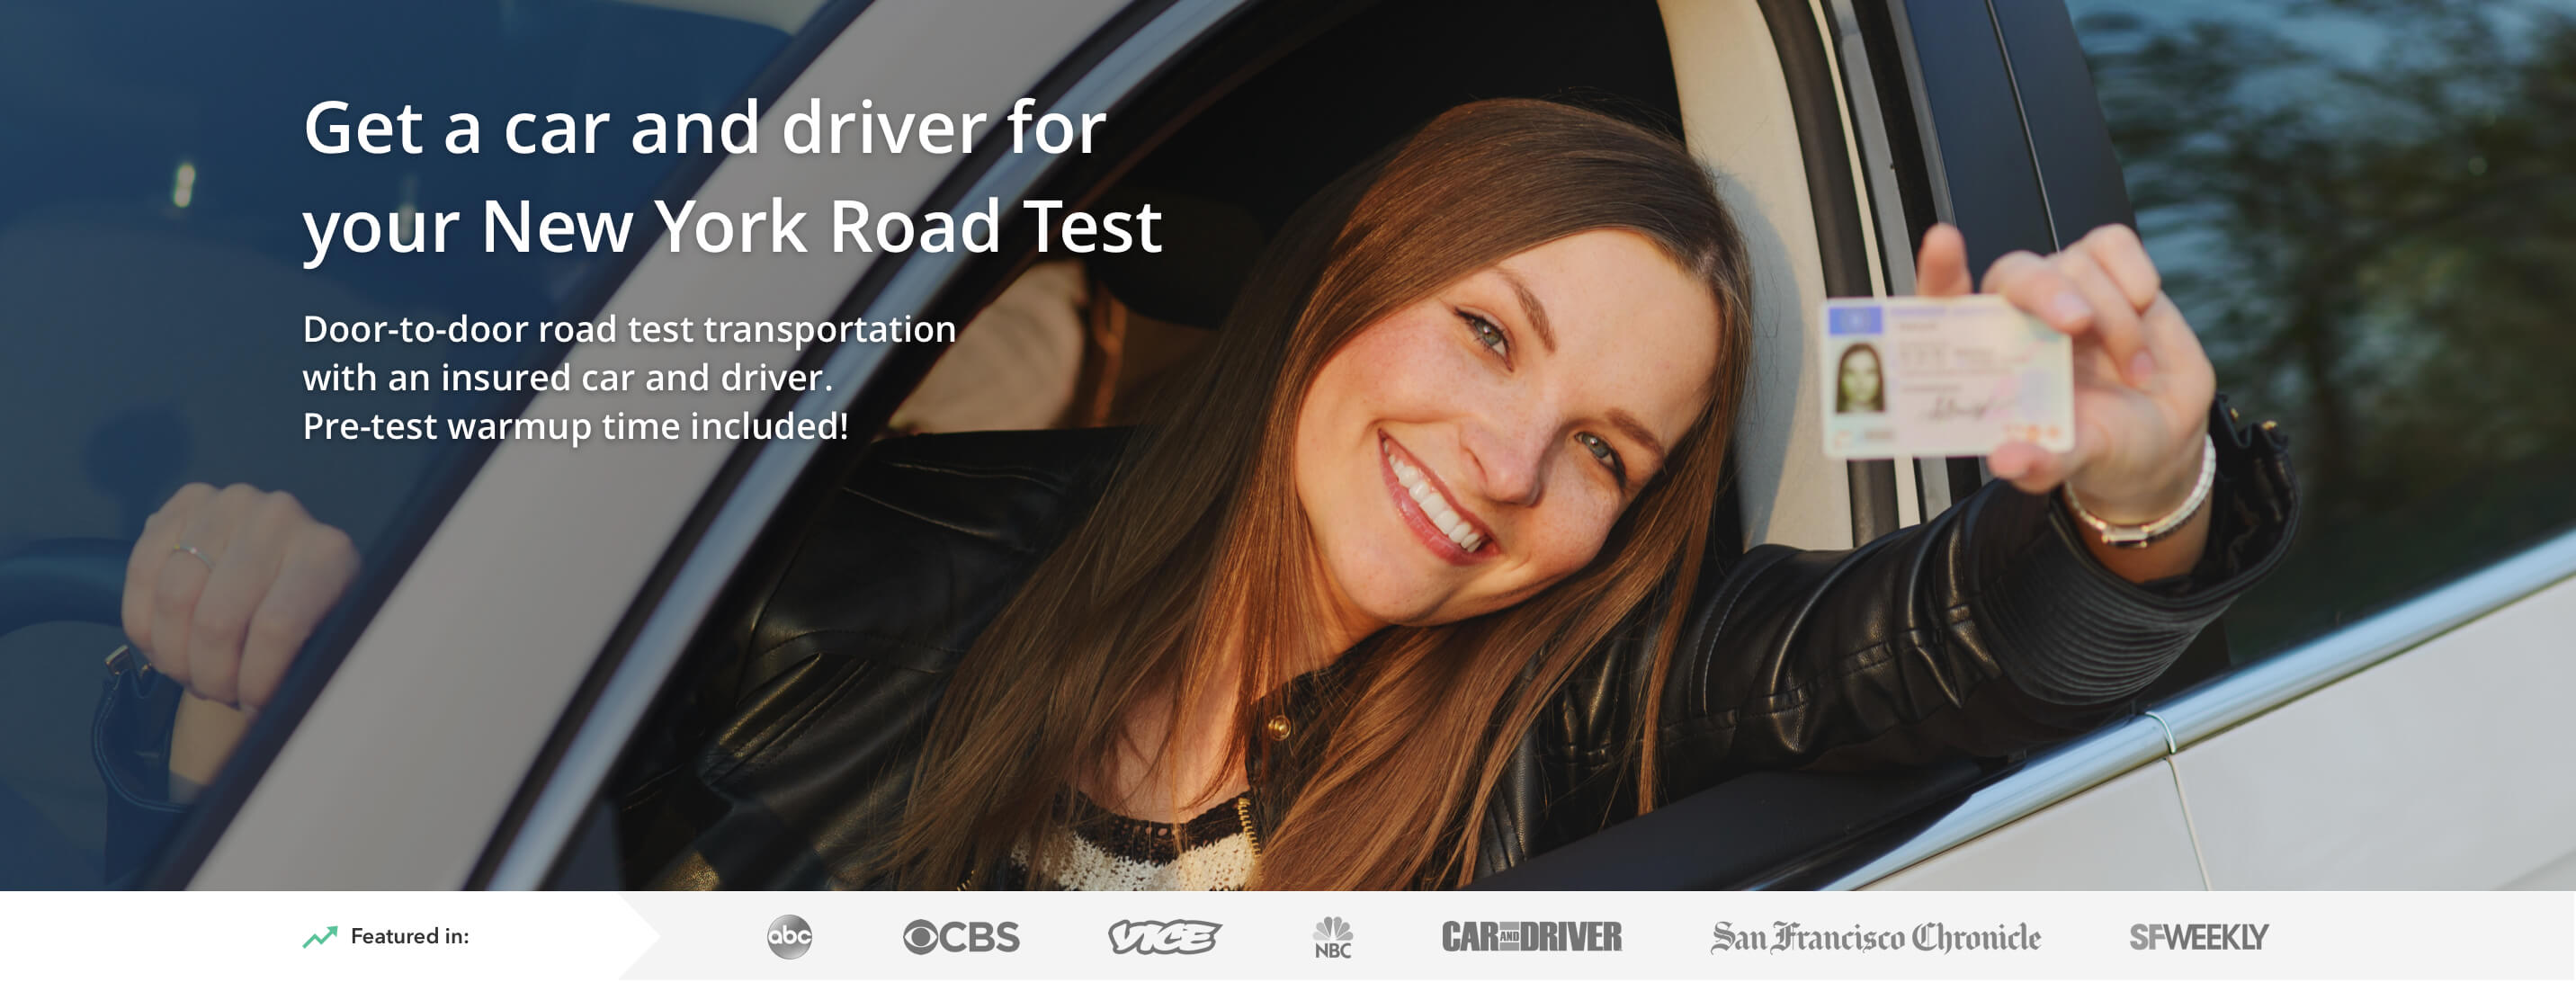 Get a car and driver for your New York road test